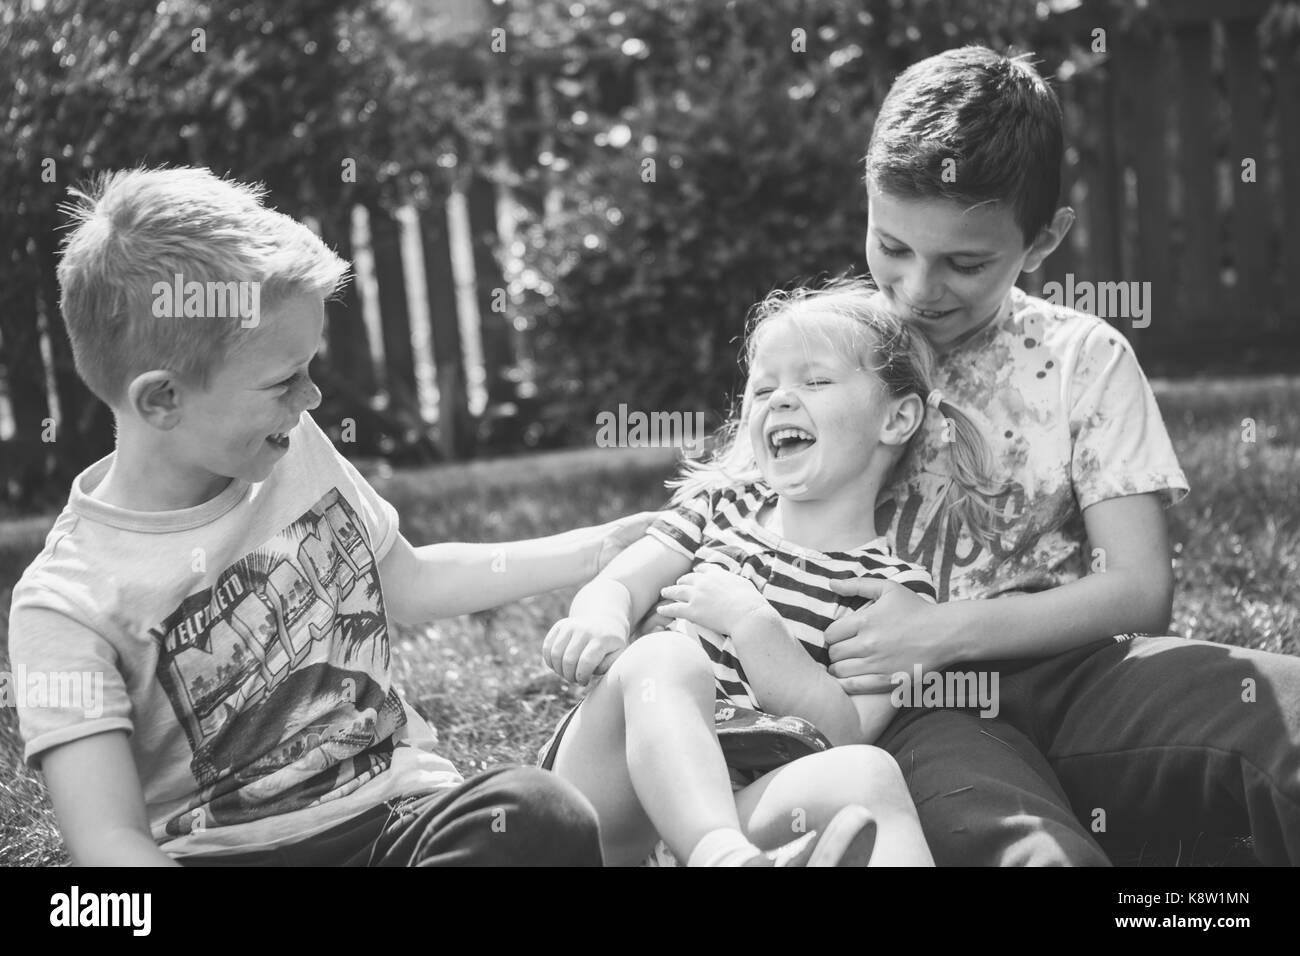 siblings playing outside - Stock Image